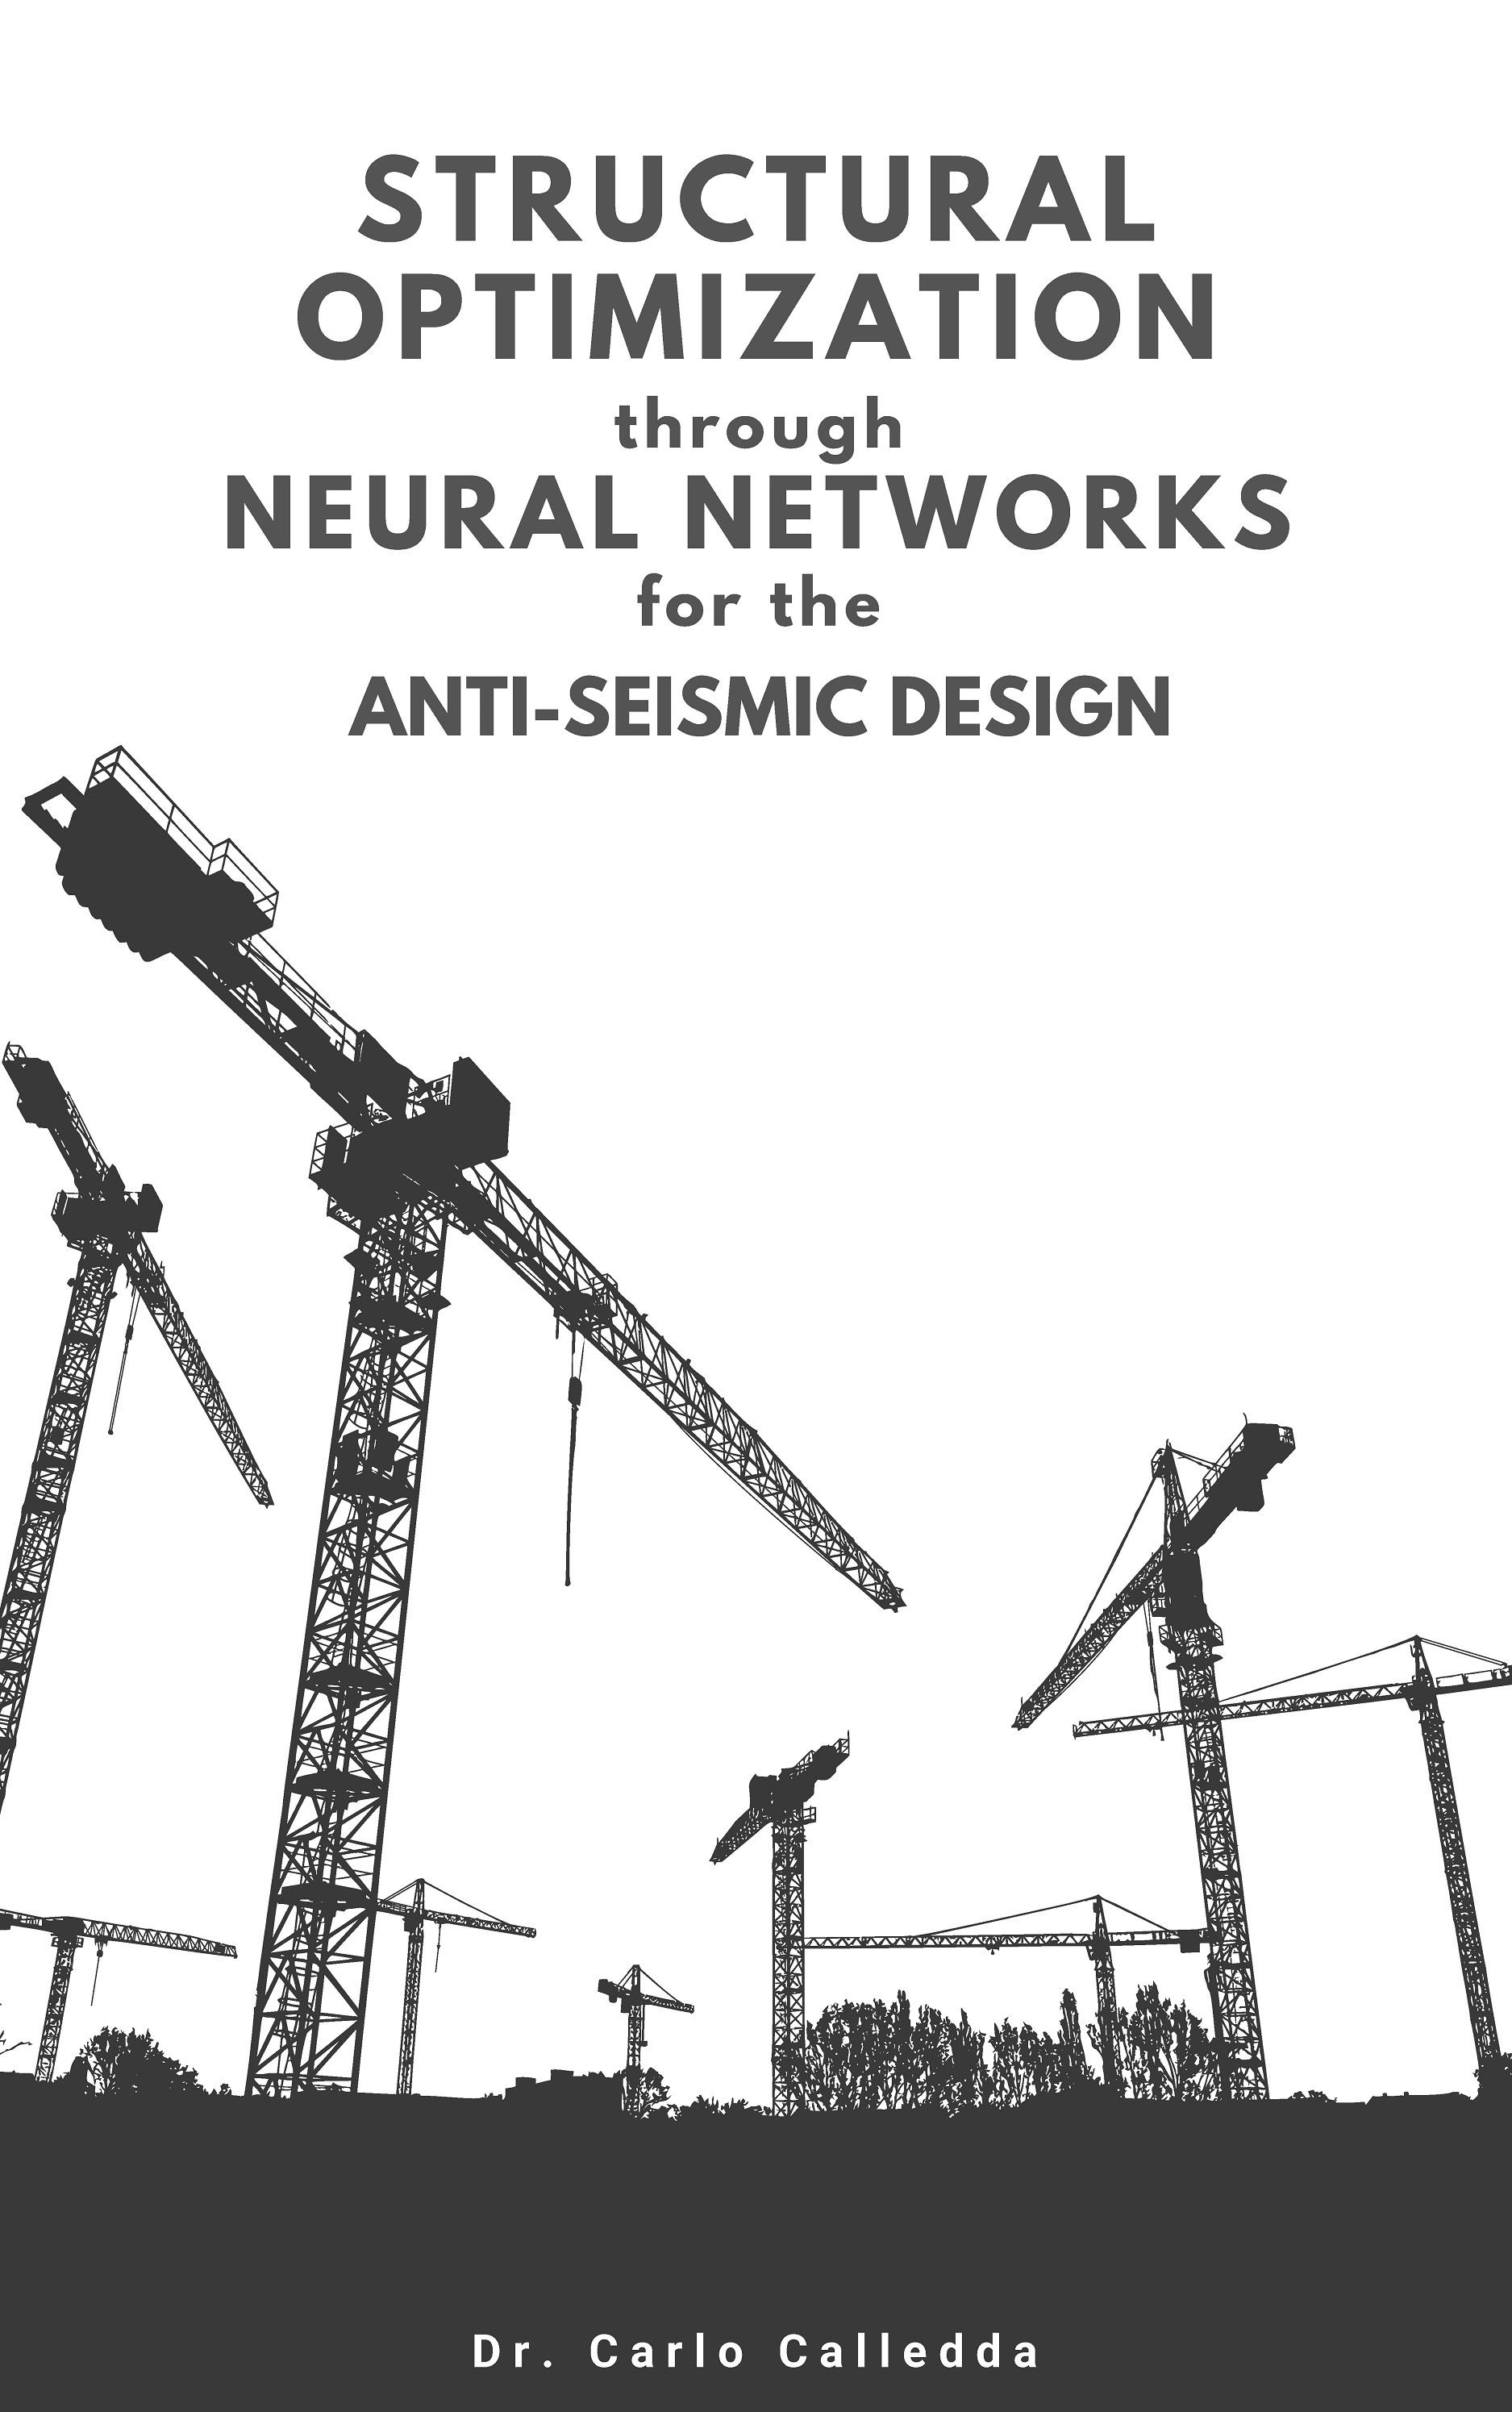 Structural optimization through neural networks for the anti-seismic design